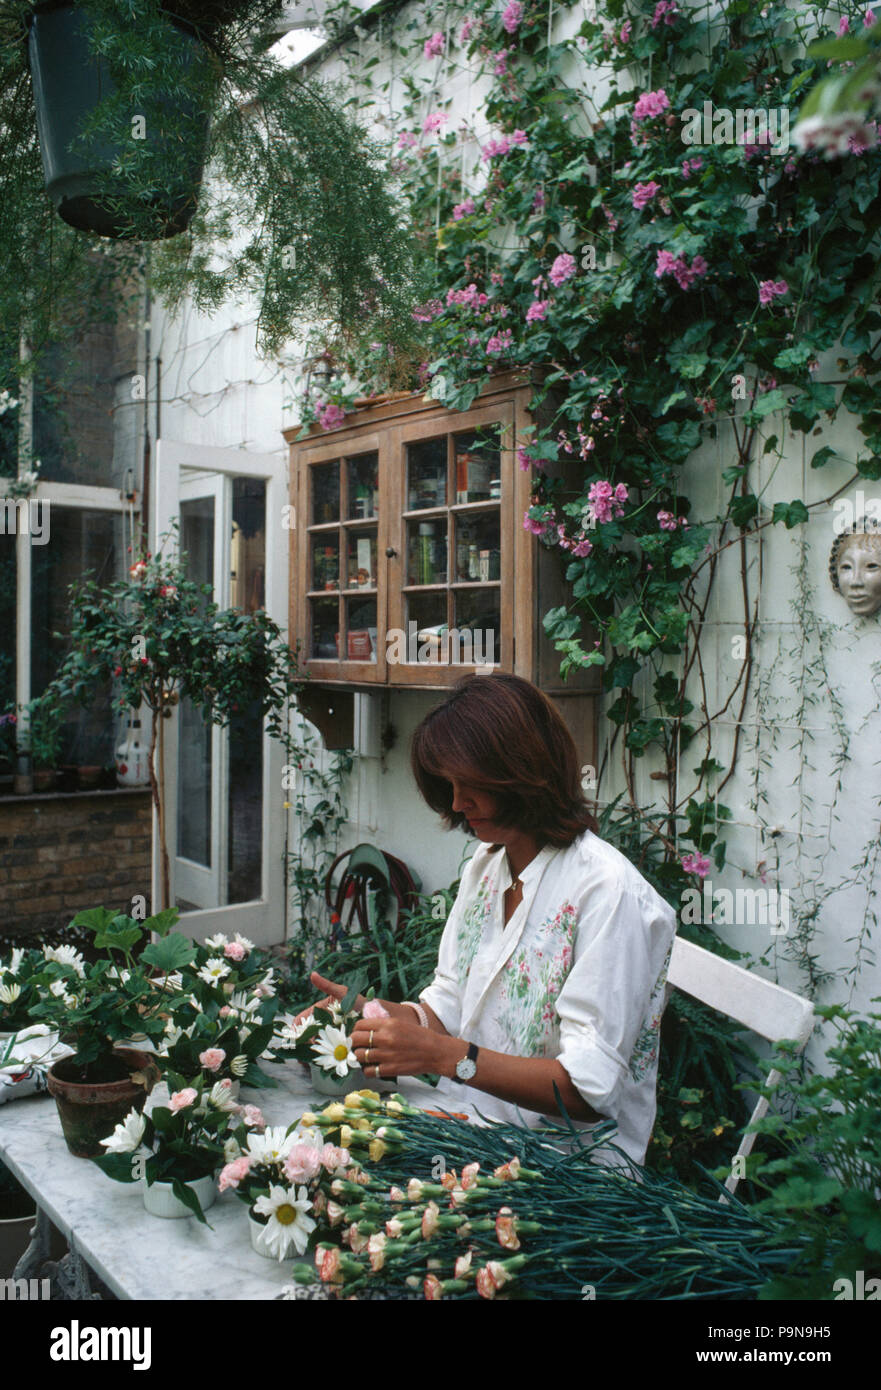 Woman arranging flowers in a conservatory         FOR EDITORIAL USE ONLY - Stock Image